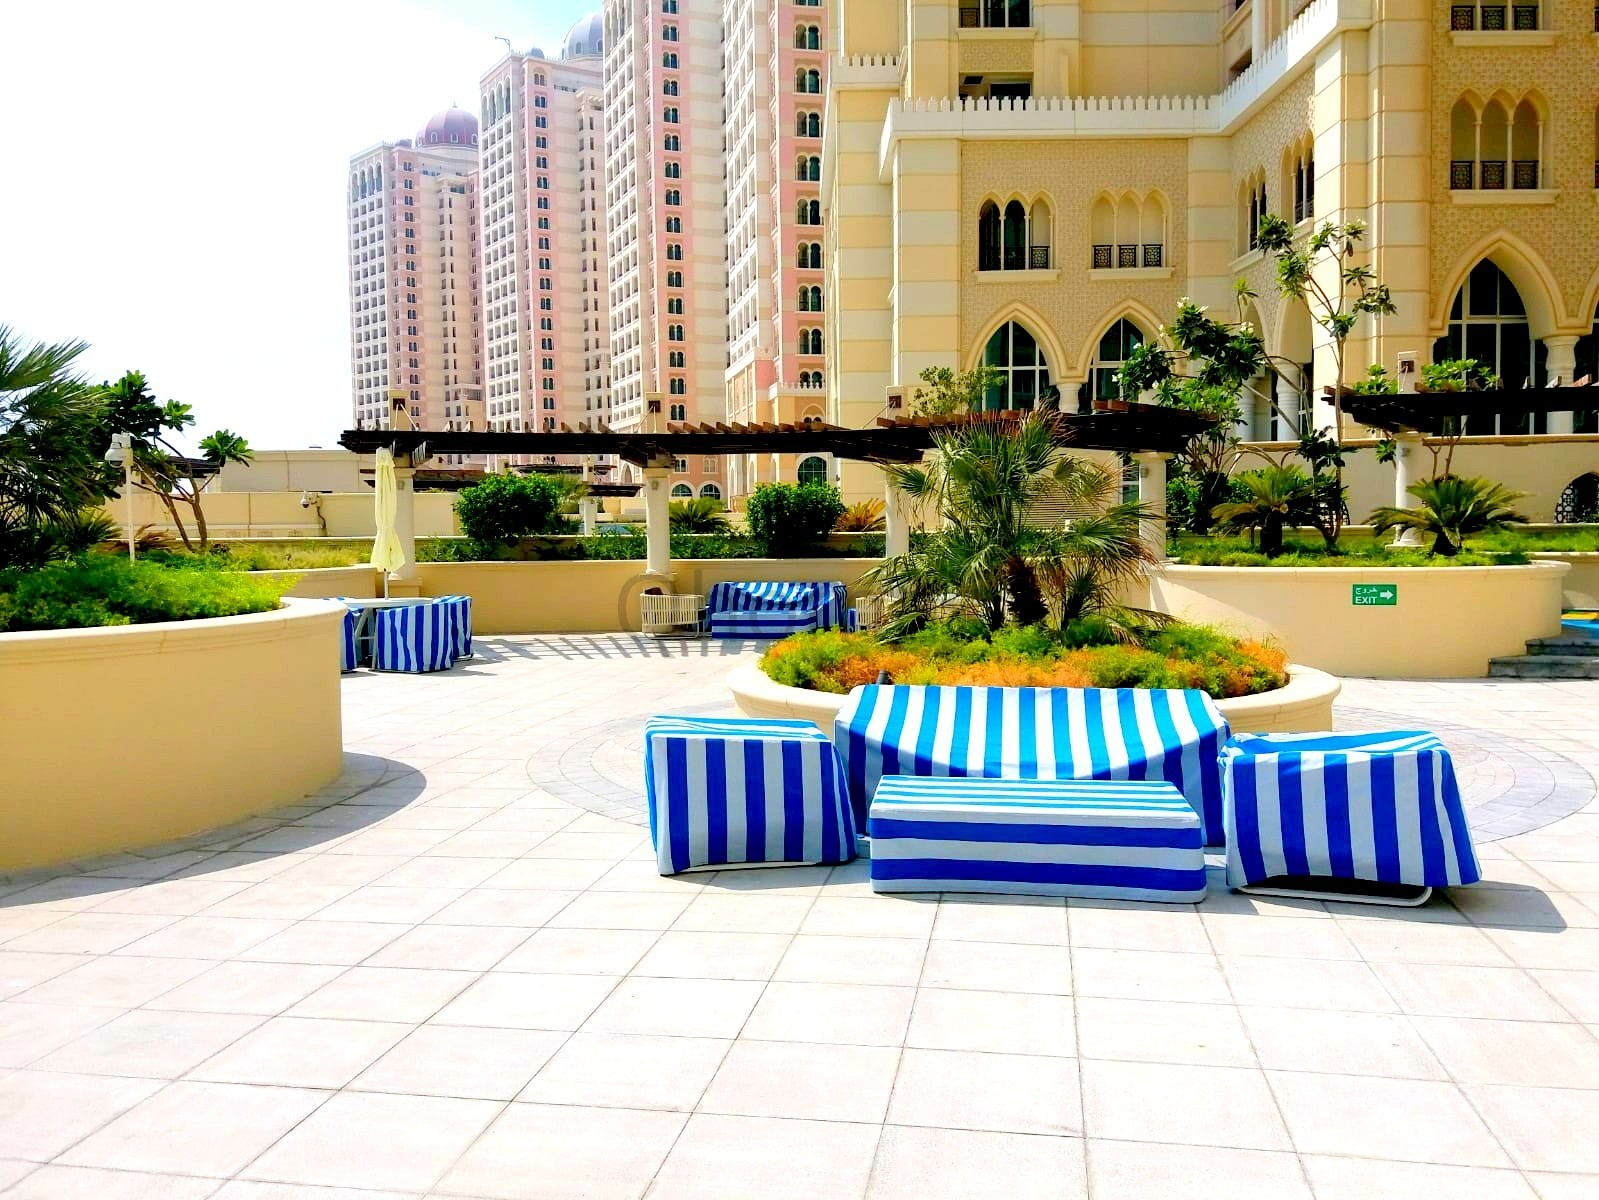 Qhomes find apartments villas for rent in doha qatar